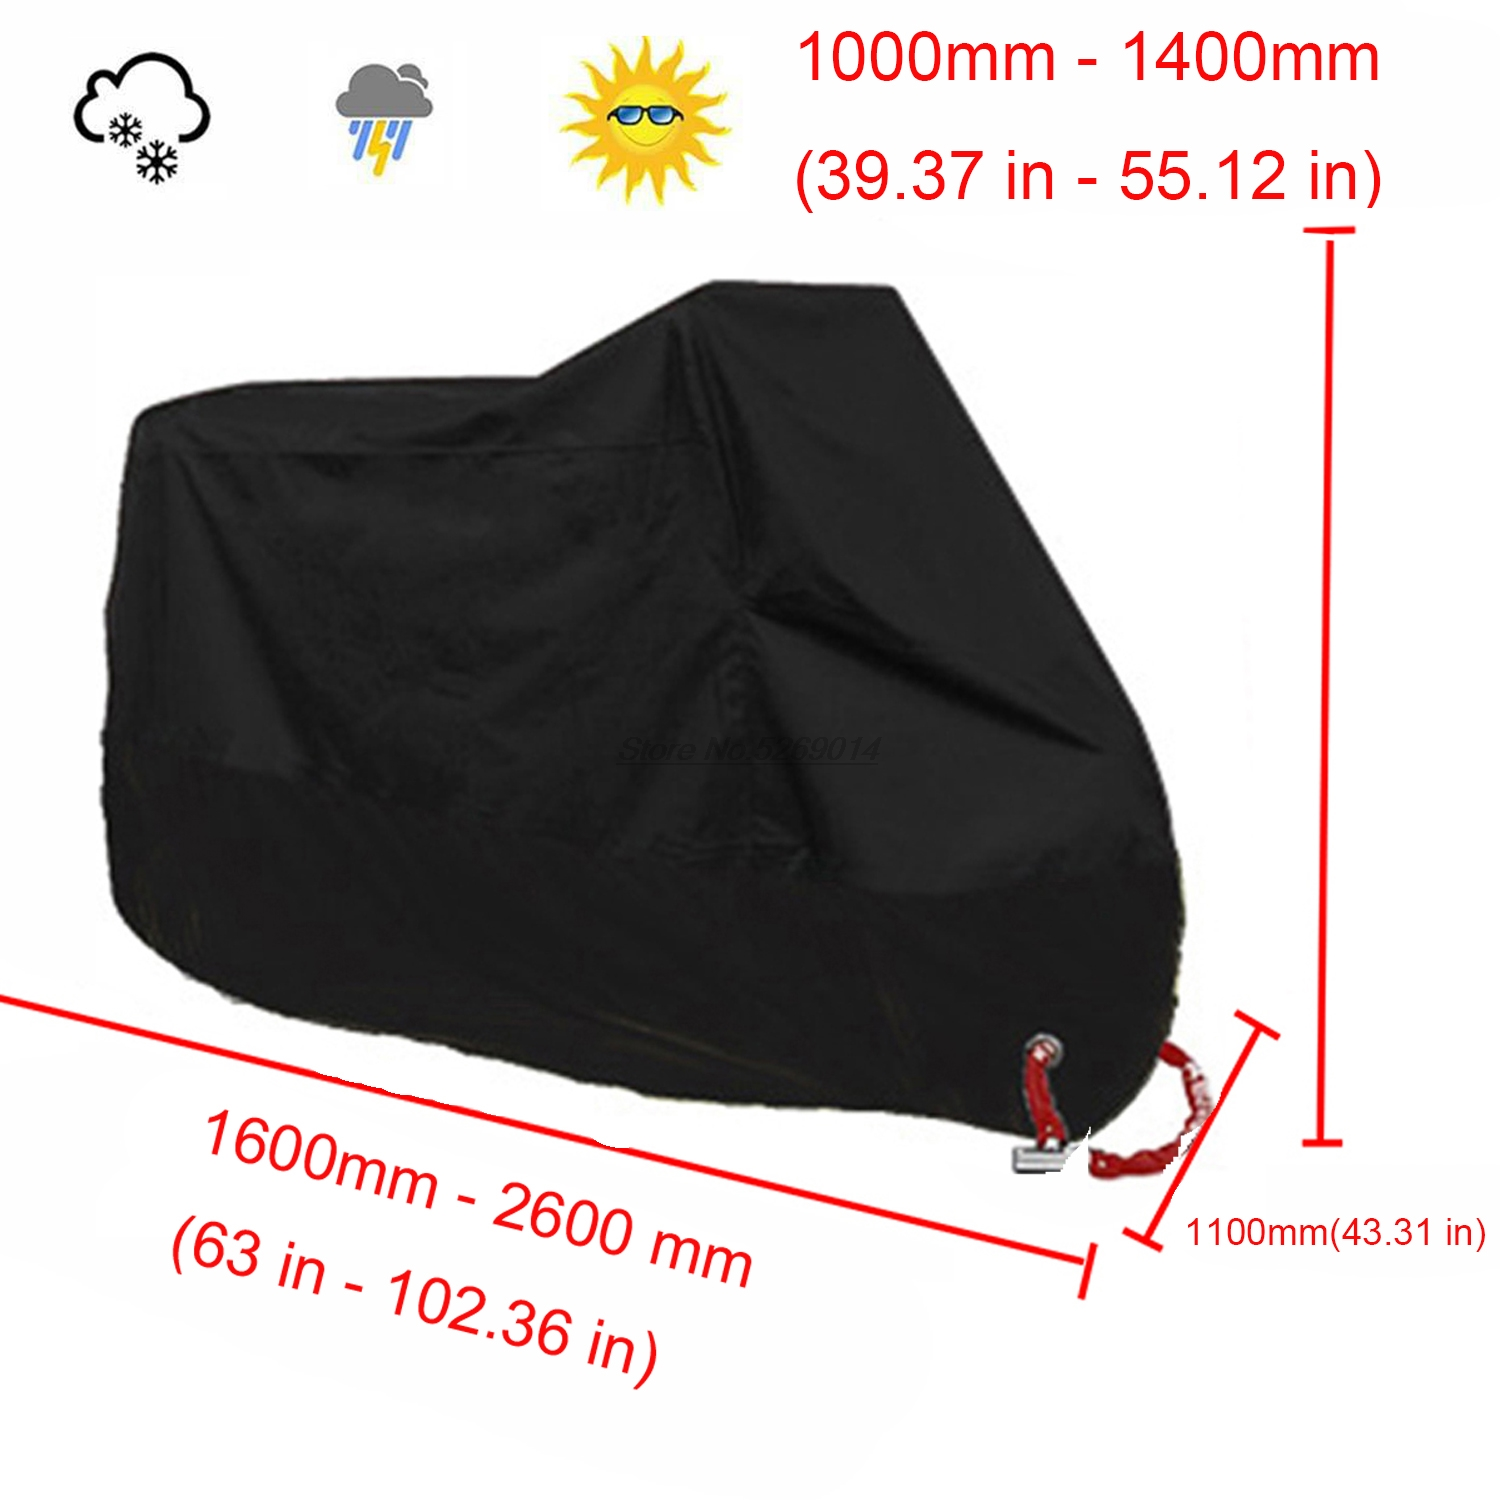 Motorcycle covers UV anti for 502 <font><b>xmax</b></font> <font><b>125</b></font> <font><b>yamaha</b></font> <font><b>xmax</b></font> 250 abs kymco parts <font><b>yamaha</b></font> xt660 honda nc750x accessories honda KTM image